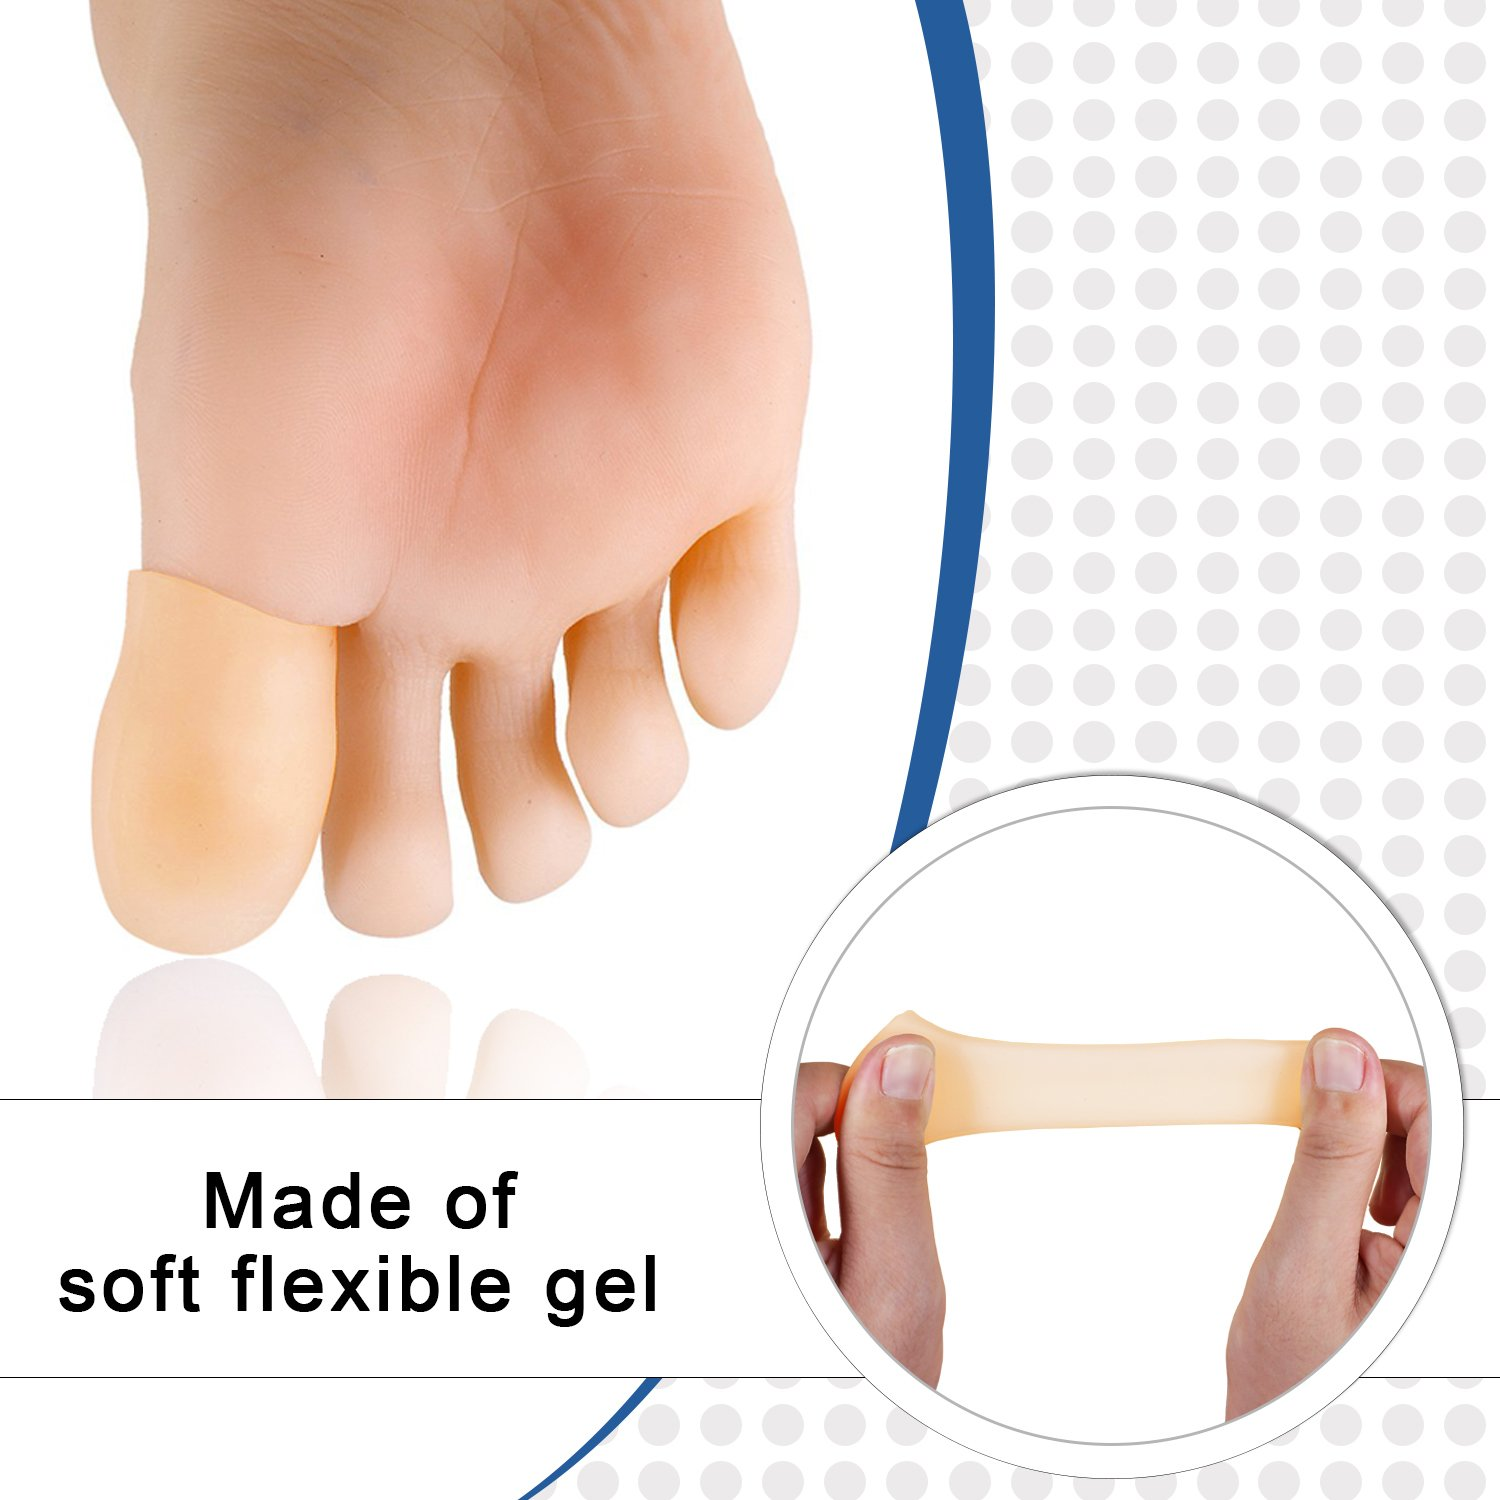 Dr. Foot's Gel Toe Caps Prevents Callus Relieve Pain fromCorns, Blisters, Hammer Toes Bunion Pain Relief - 4 Pairs (Beige)